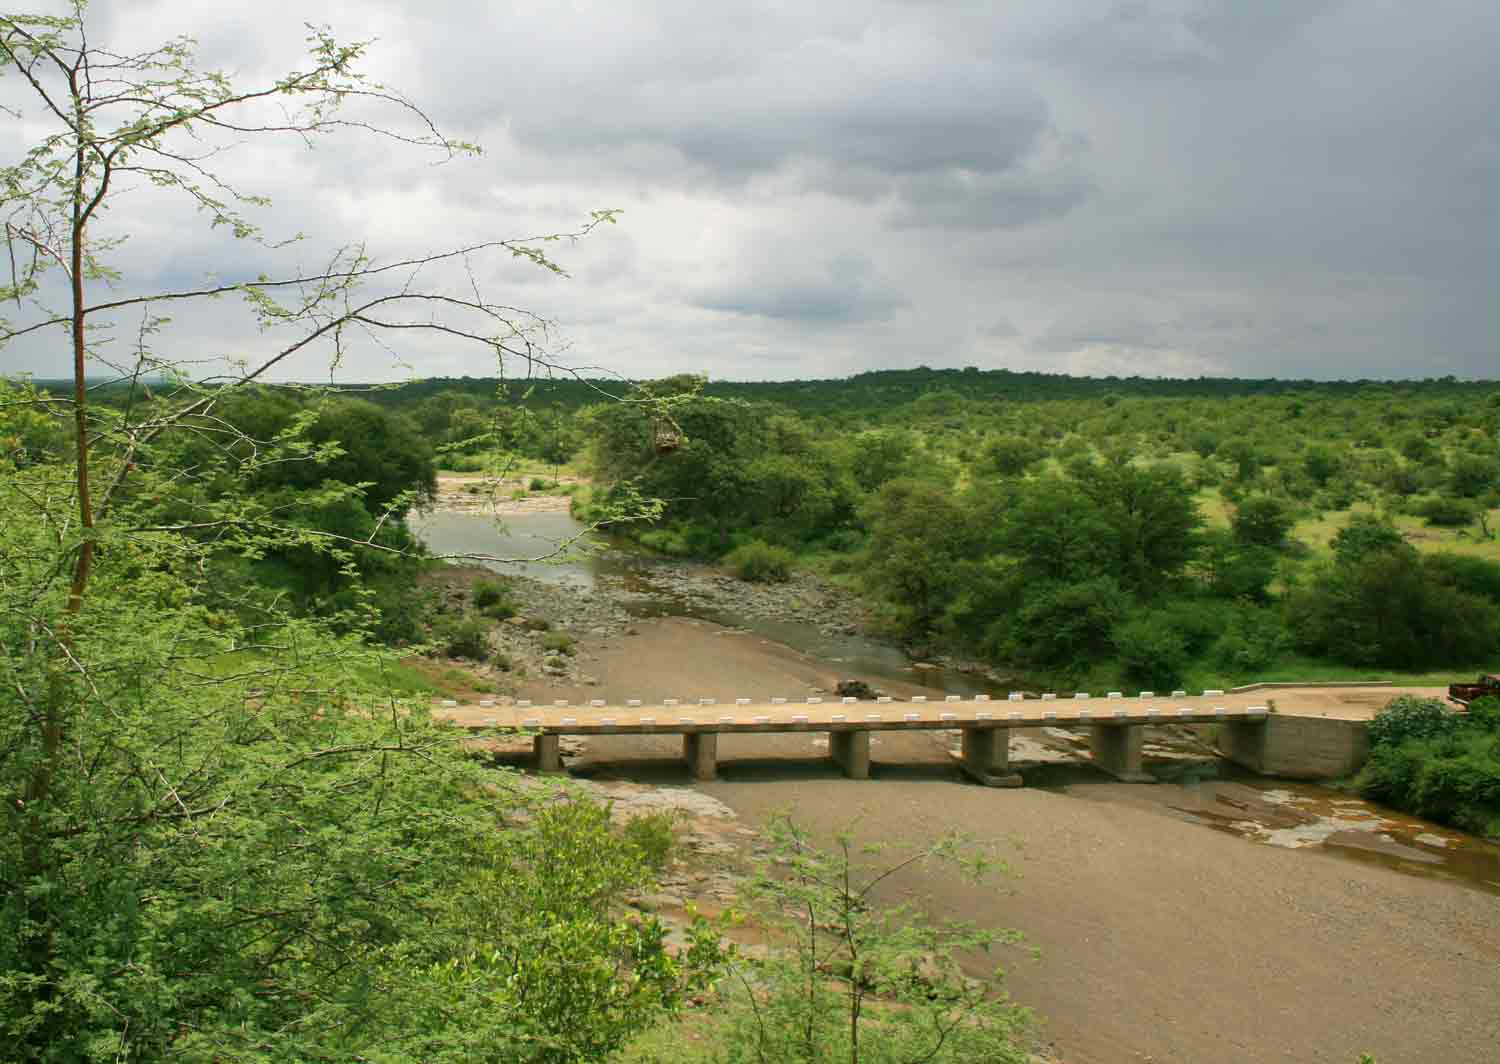 Bridge over the Hwale River, a tributary of the Shashe.